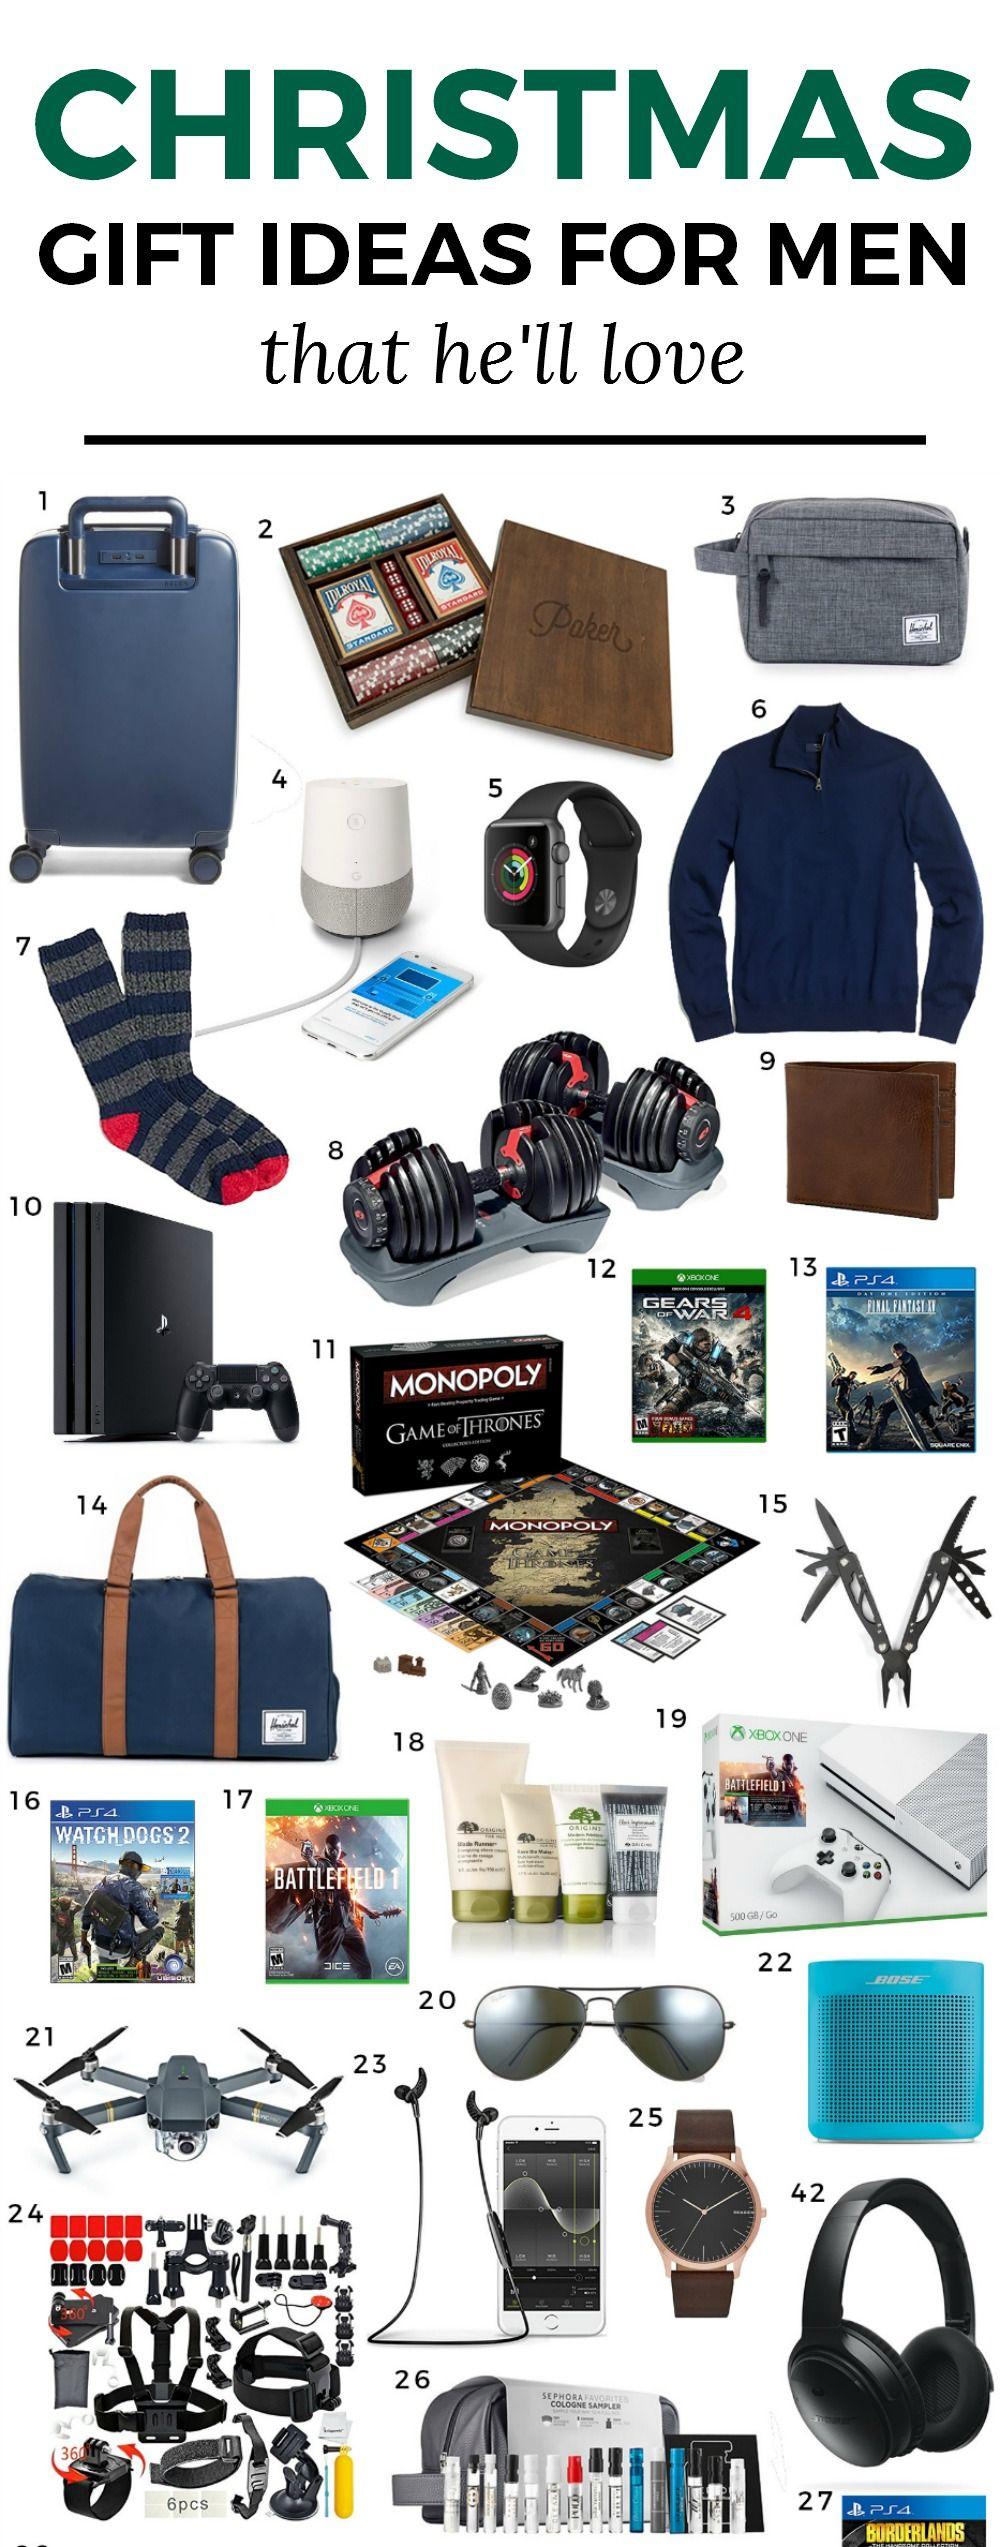 The Best Christmas Gift Ideas For Men Ultimate Christmas Gift Guide For Men By Blogger Christmas Gifts For Men Ultimate Christmas Gift Guide Boyfriend Gifts